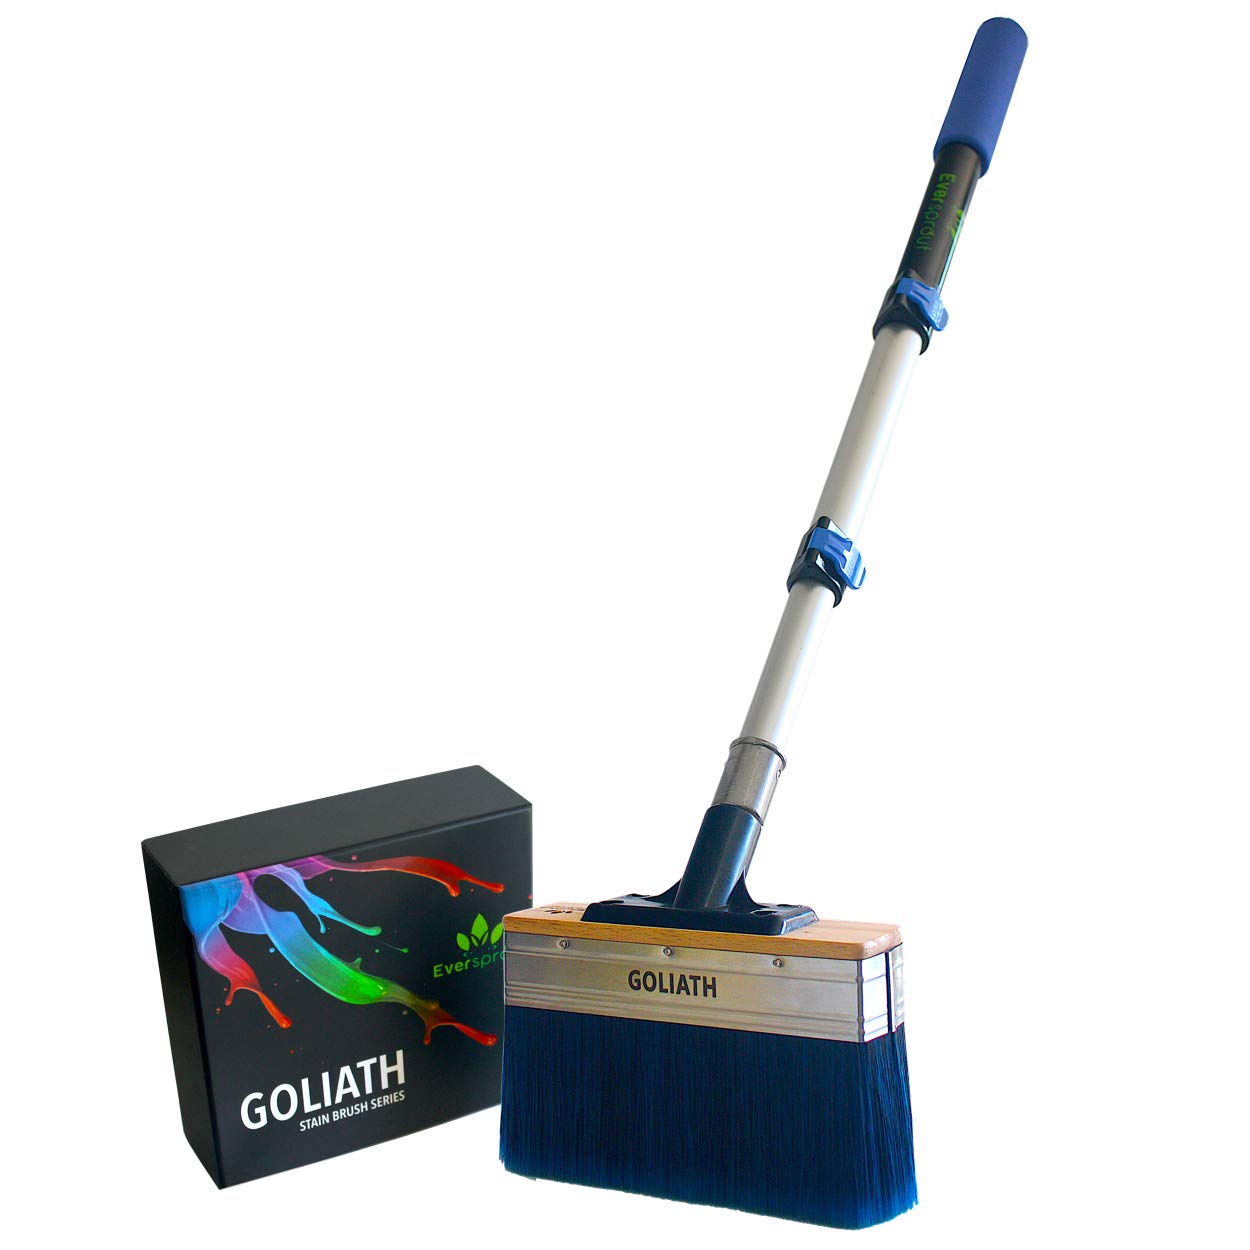 EVERSPROUT 1.5-3.5 Foot Goliath Deck Stain Brush & Extension Pole Combo | ULTRA WIDE 7-Inch Design Saves Time | Deck Stain Applicator for Wood, Composite, Concrete | +Bonus Cleaning Comb, Opener, Case